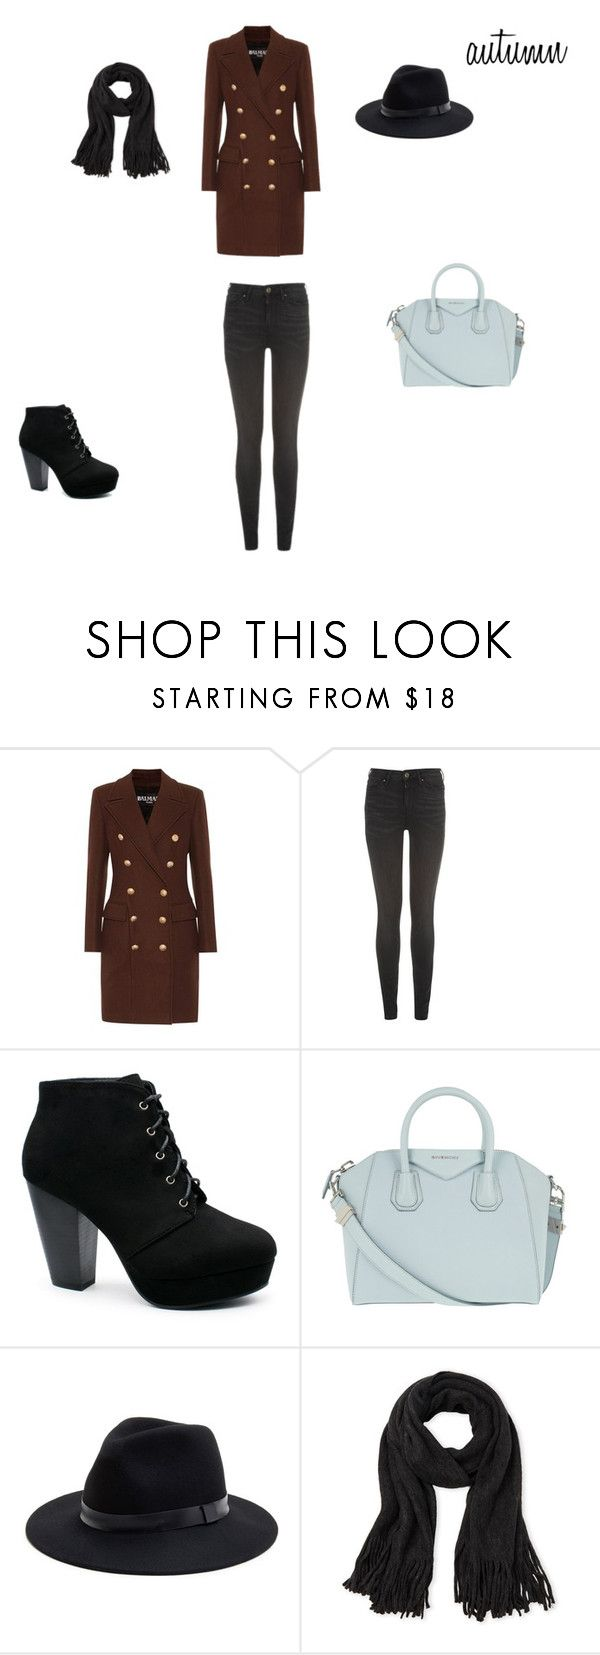 autumn by zuzia-apanasewicz on Polyvore featuring moda, Balmain, Tommy Hilfiger, Givenchy, Sole Society and Steve Madden